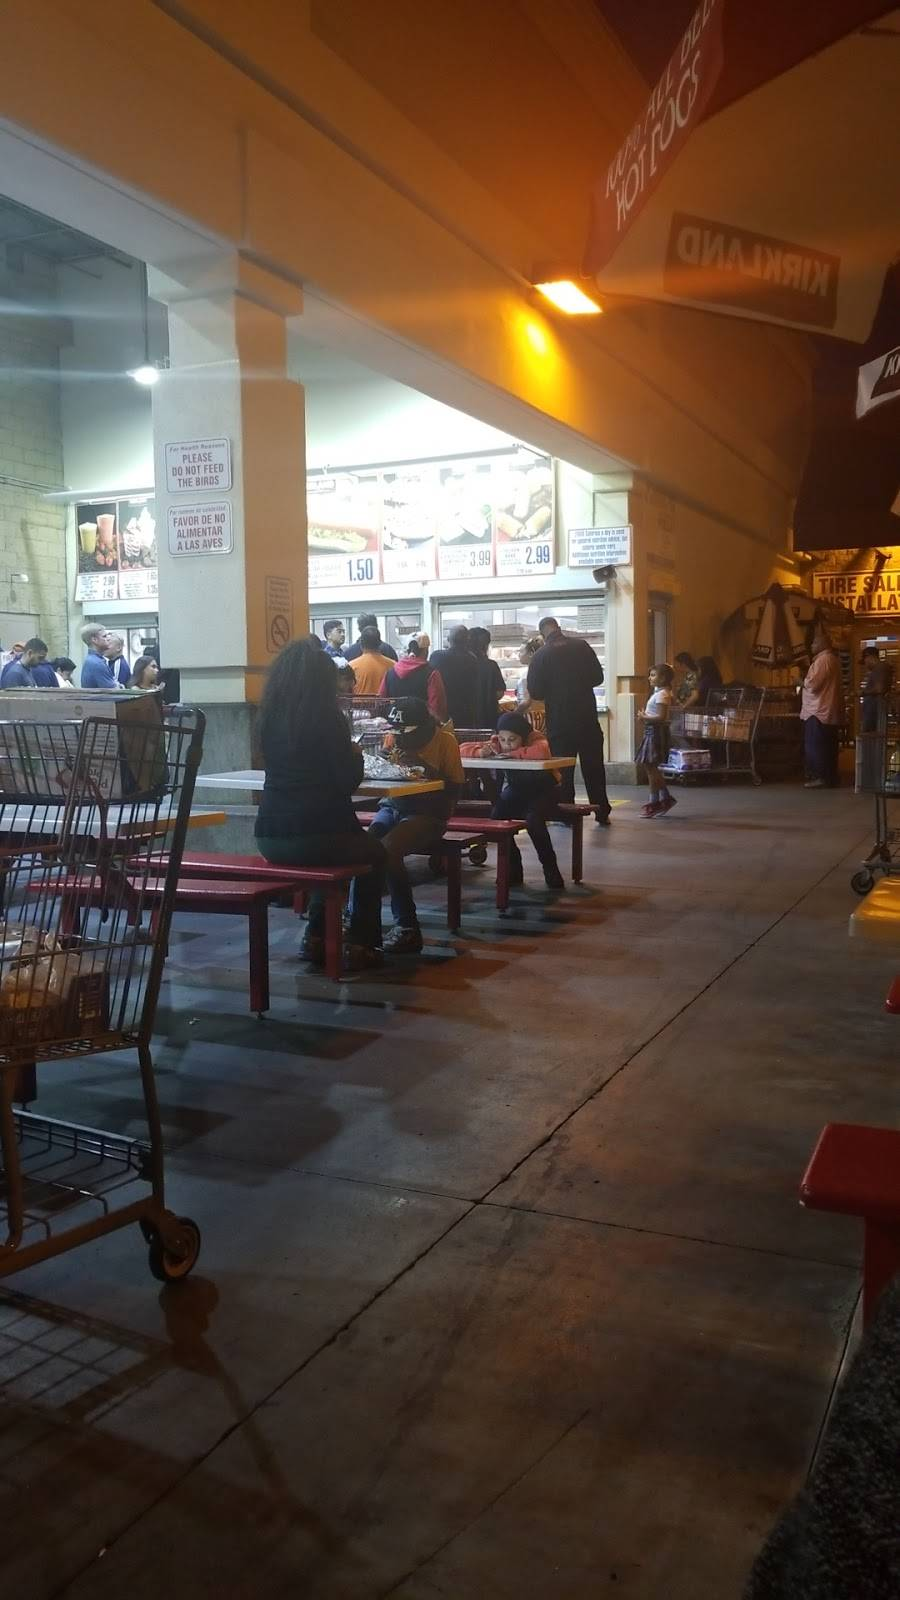 Costco Food Court - meal takeaway  | Photo 8 of 8 | Address: 650 Gateway Center Dr, San Diego, CA 92102, USA | Phone: (619) 358-2321